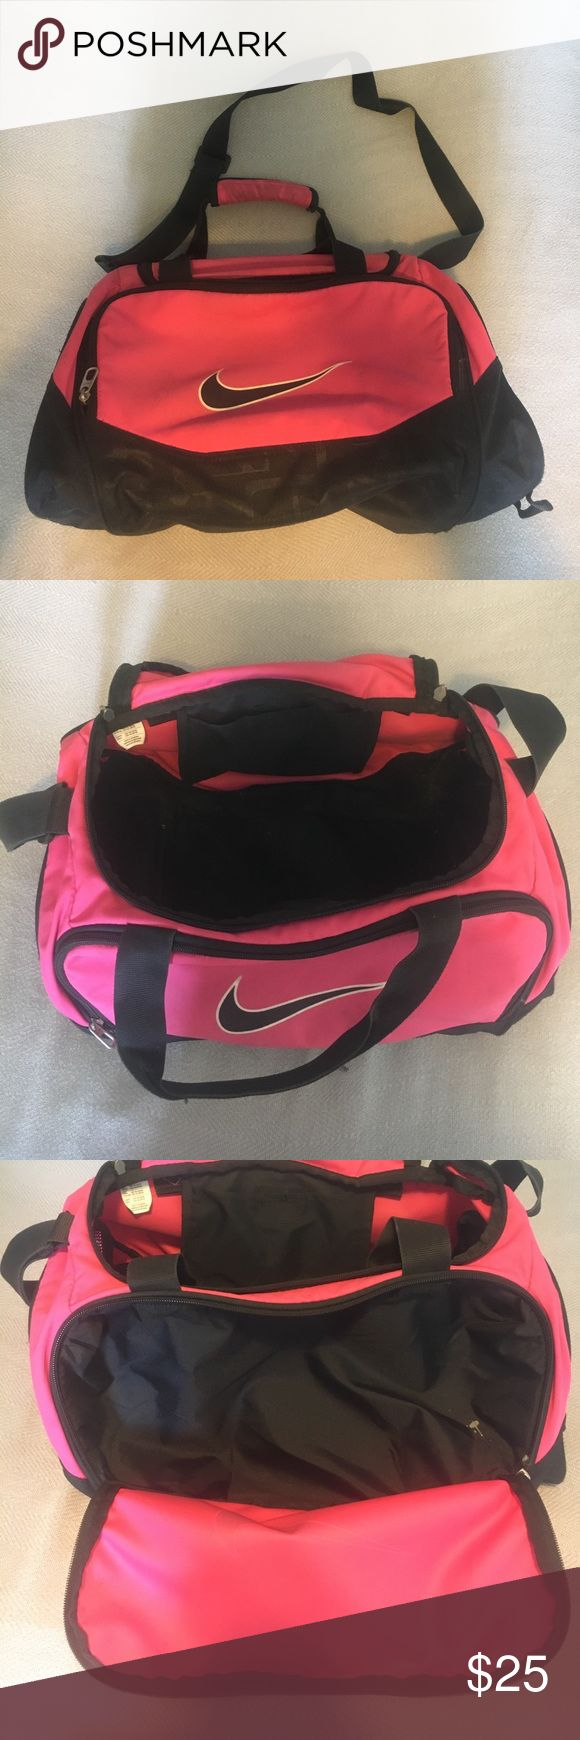 Nike Bag This hot pink nike bag has one large compartment on top, & a smaller one in the front. The large one has a small phone holder on top. It has a shoulder strap that adjusts in length, & handles if you wish to carry it. Ask any questions if needed!! I'll take offers Nike Bags Travel Bags